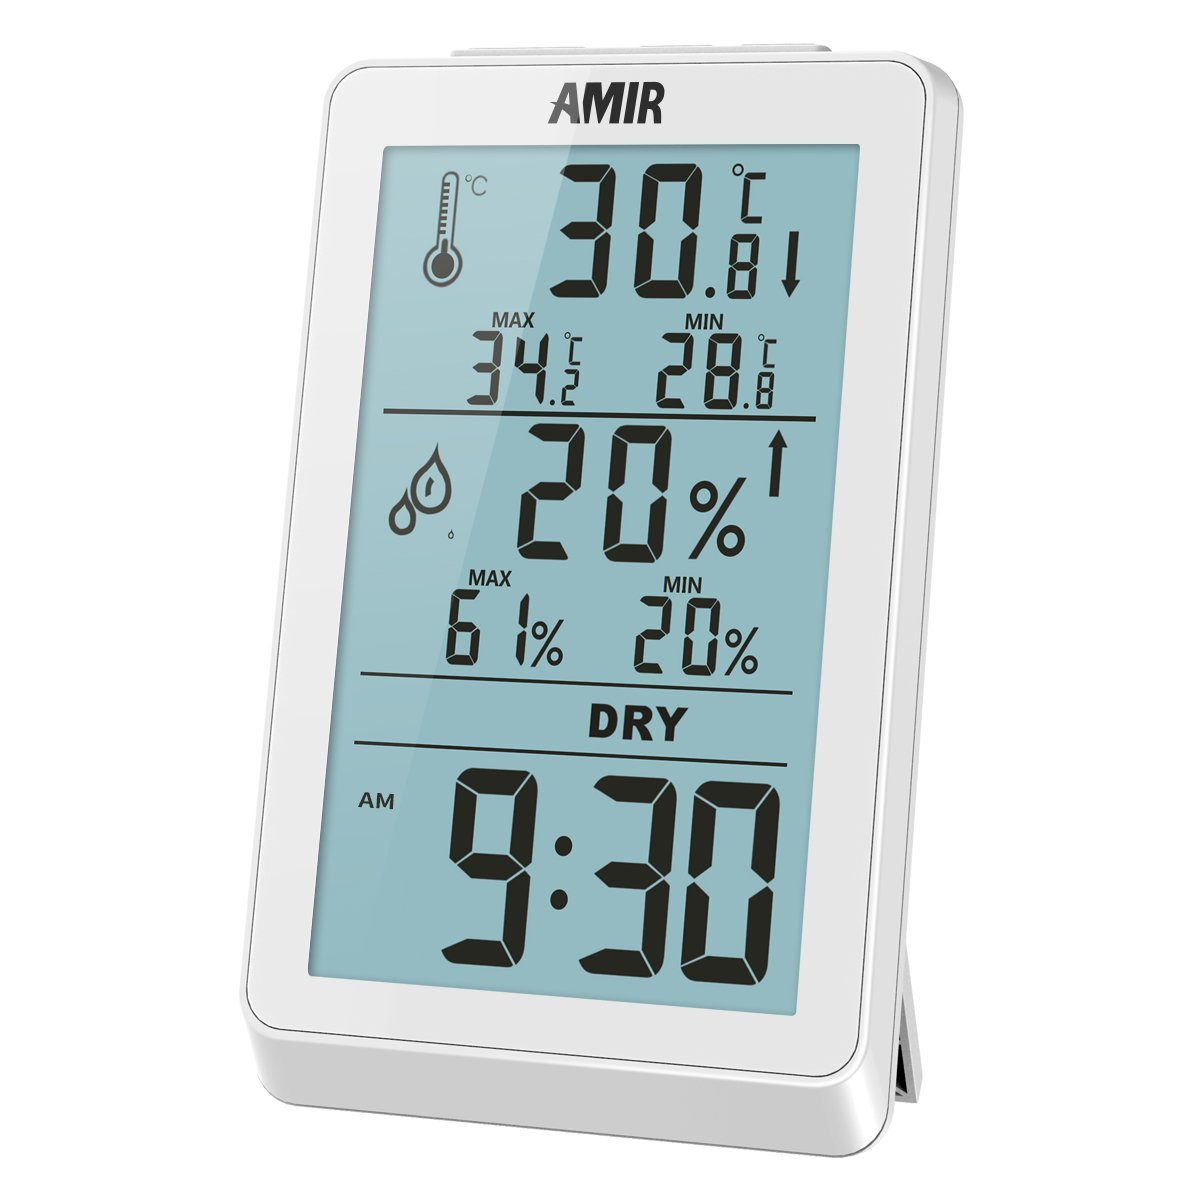 AMIR Digital Hygrometer, Indoor Thermometer Humidity Gauge, Humidity Gauge with Backlight Temperature Humidity Monitor Sensor Room Thermometer for House, Office, Baby Bedroom, etc.